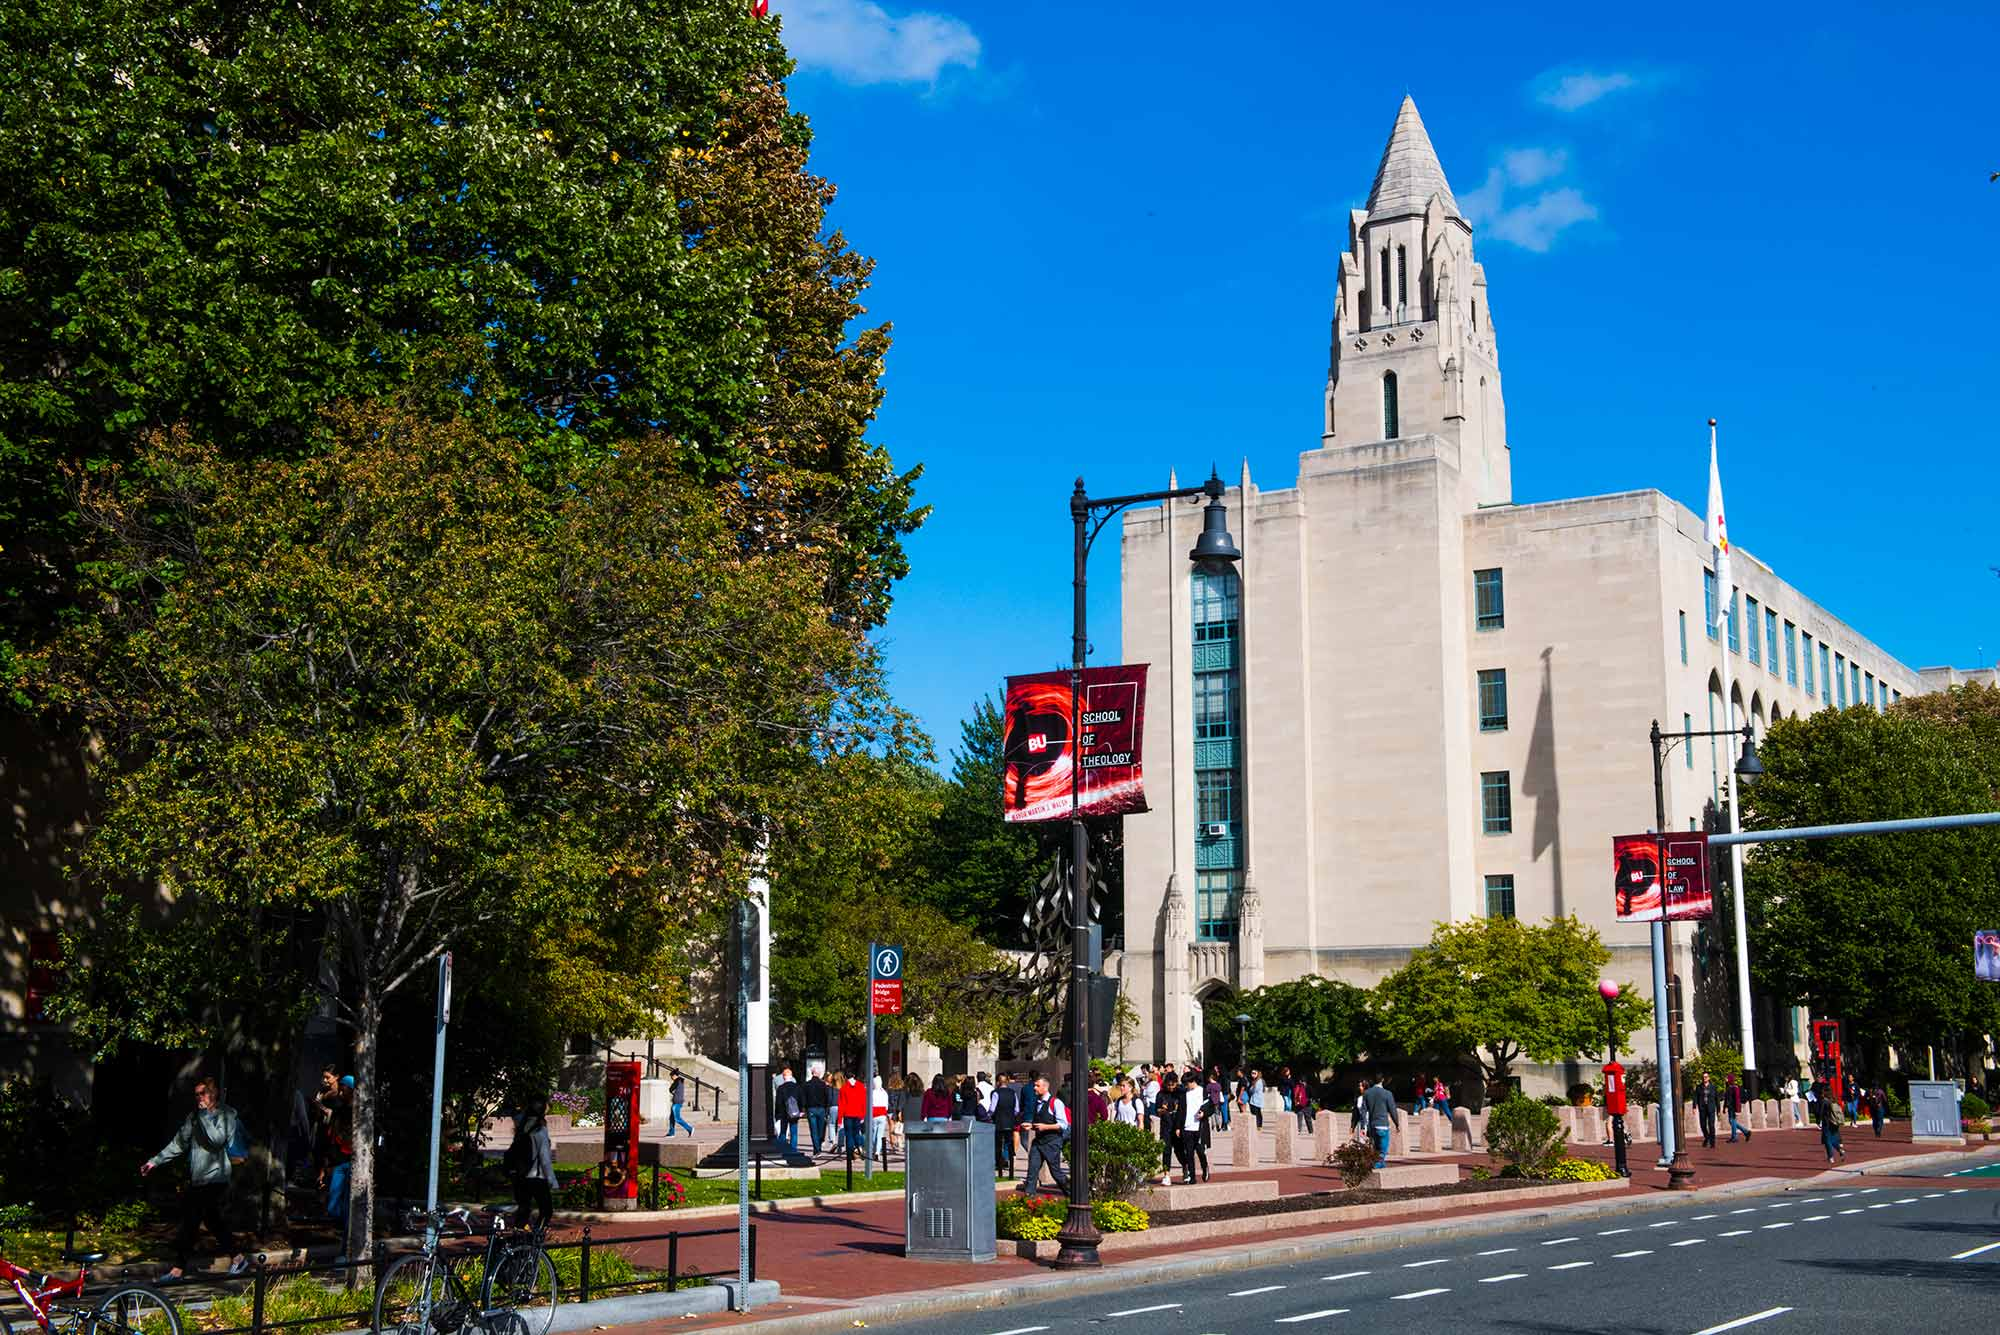 Photograph of Marsh Plaza from across the street with CAS building in background. The plaza is busy with people.Red banners seen throughout image. It's a sunny day at the start of the fall semester.